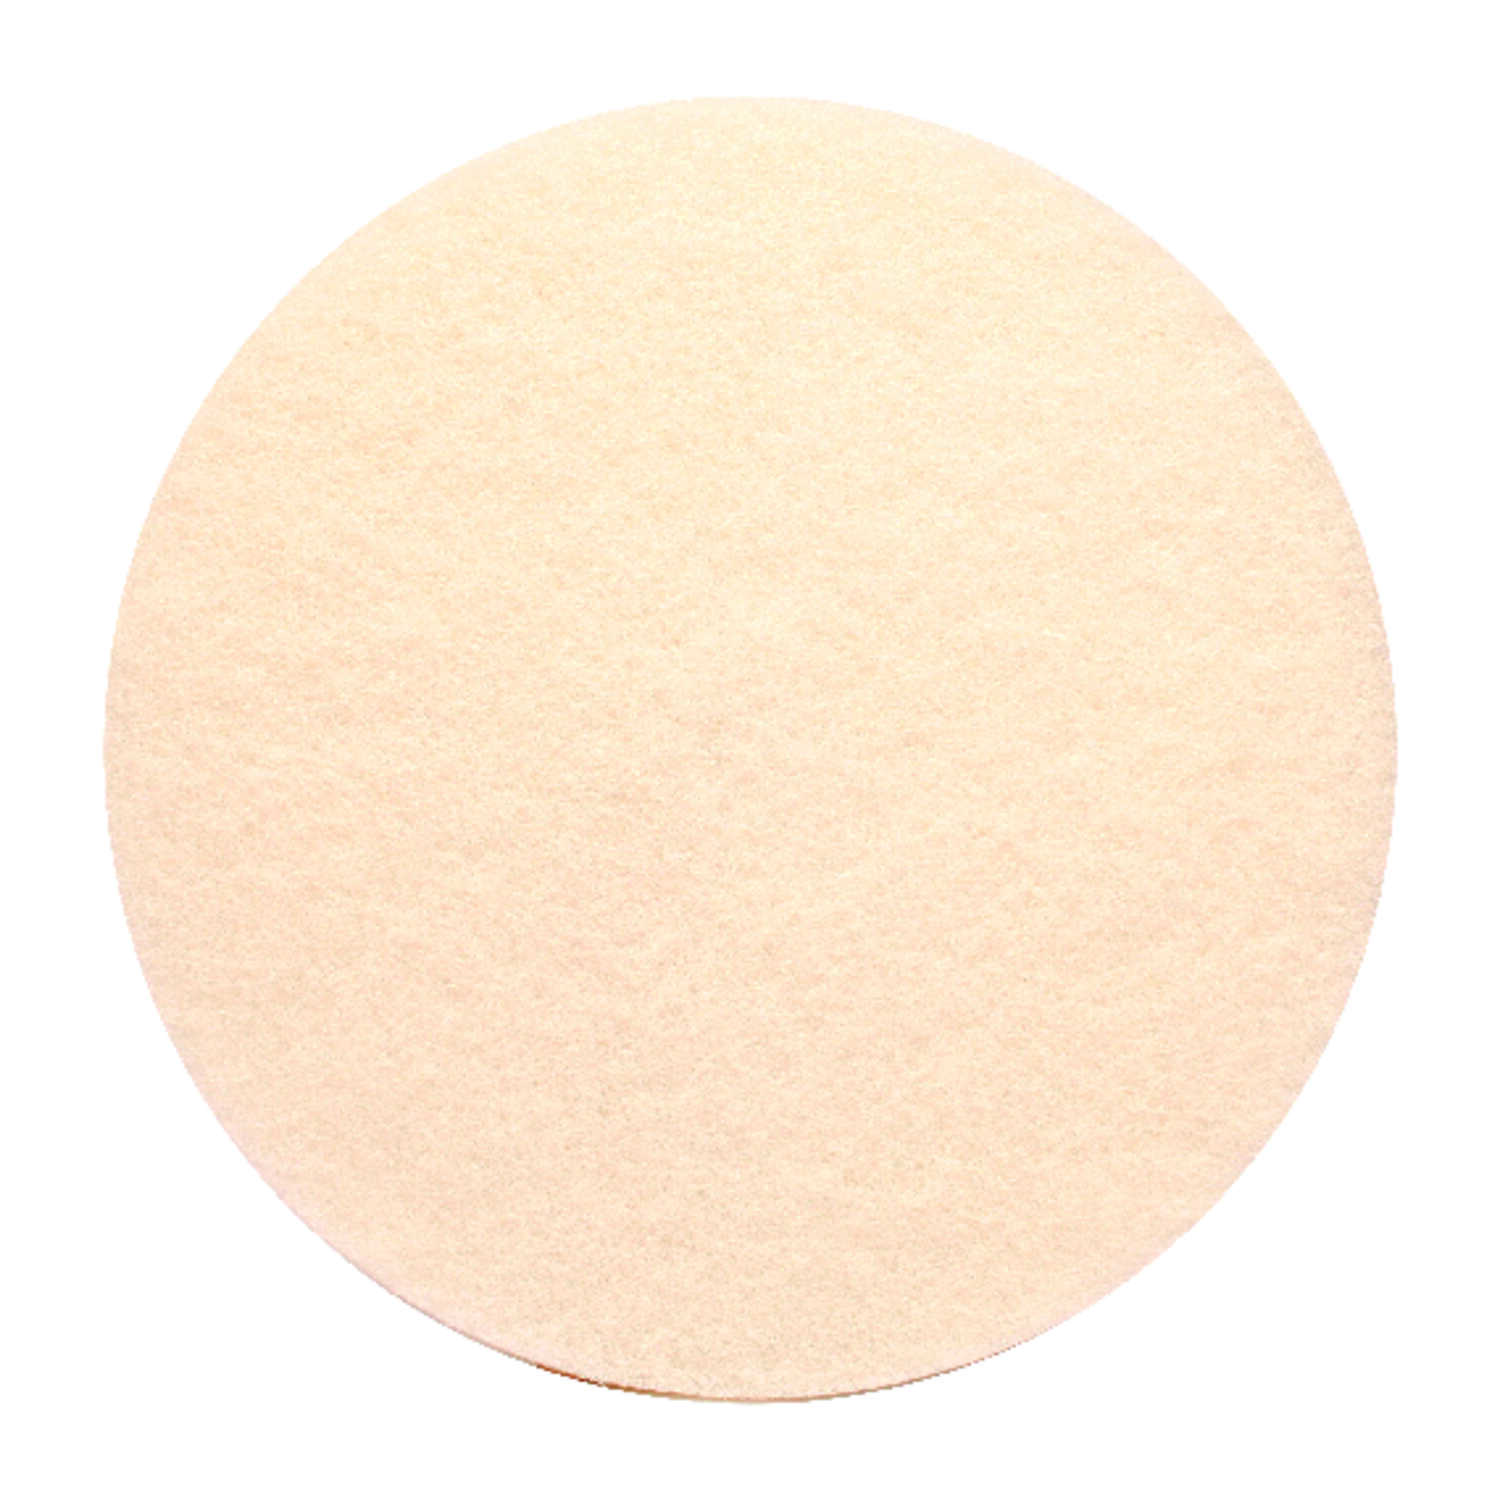 Gator  17 in. Dia. Non-Woven Natural/Polyester Fiber  Floor Pad Disc  White